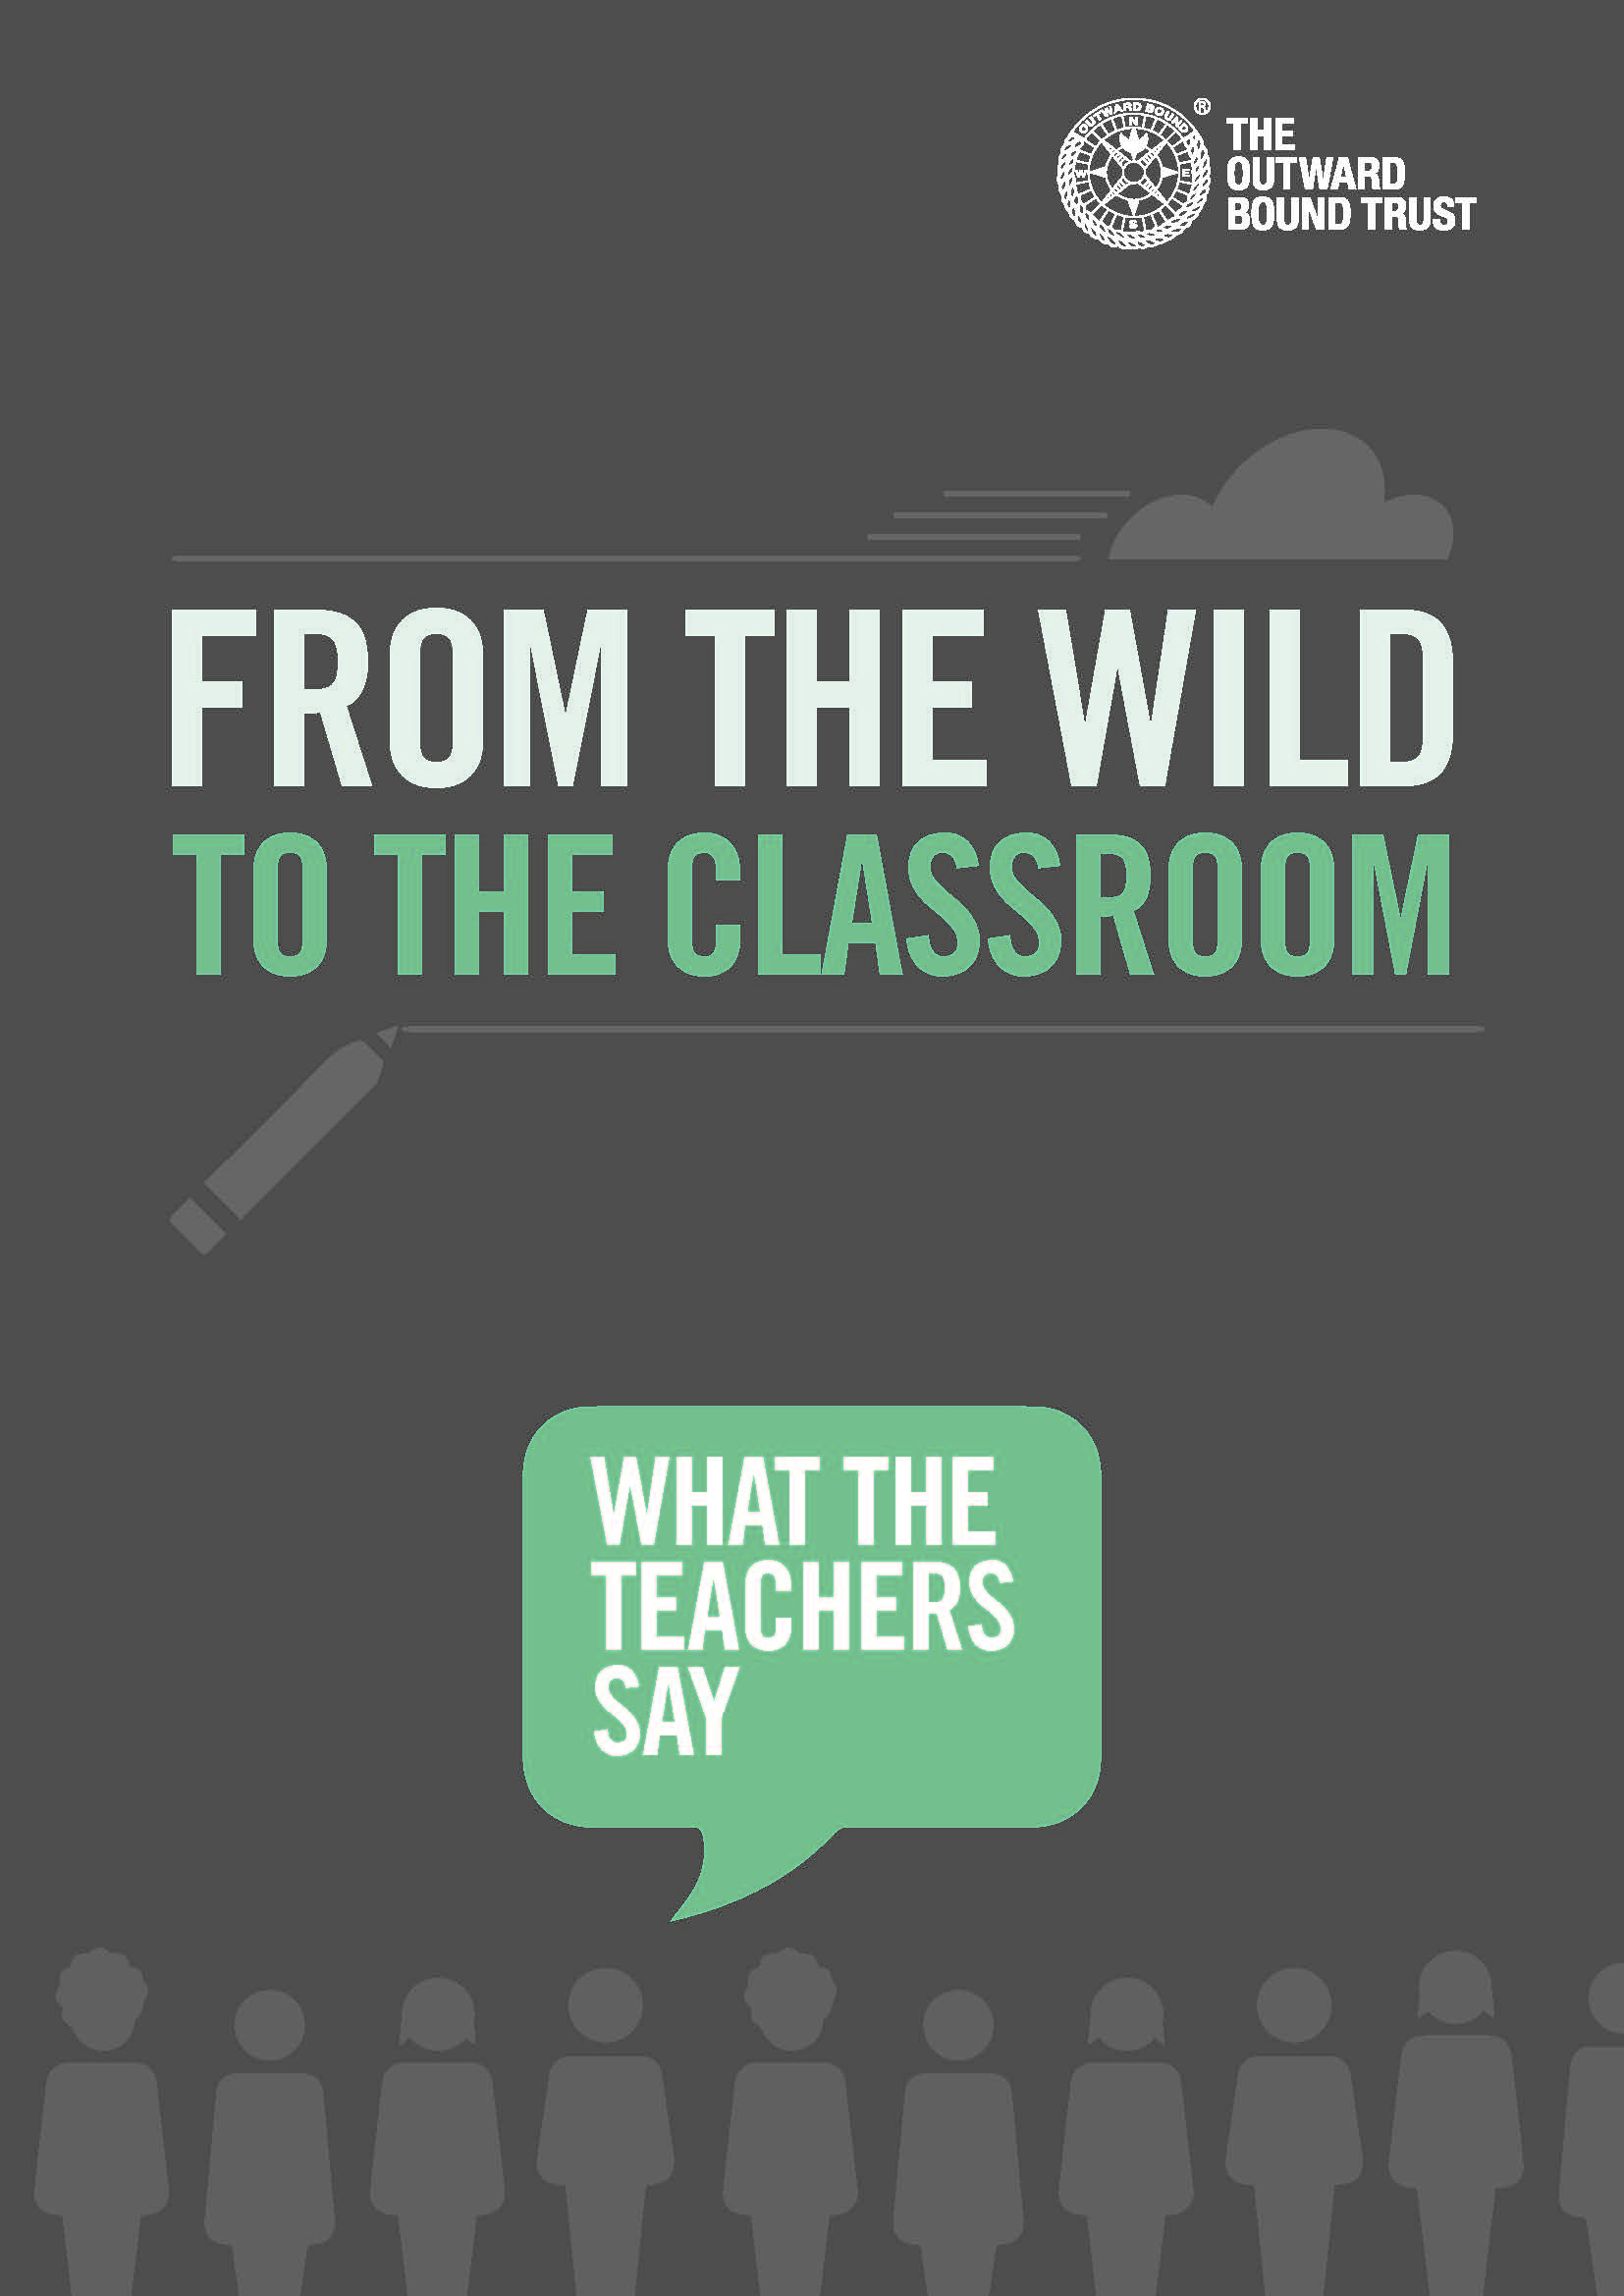 'From the Wild' Brochure cover